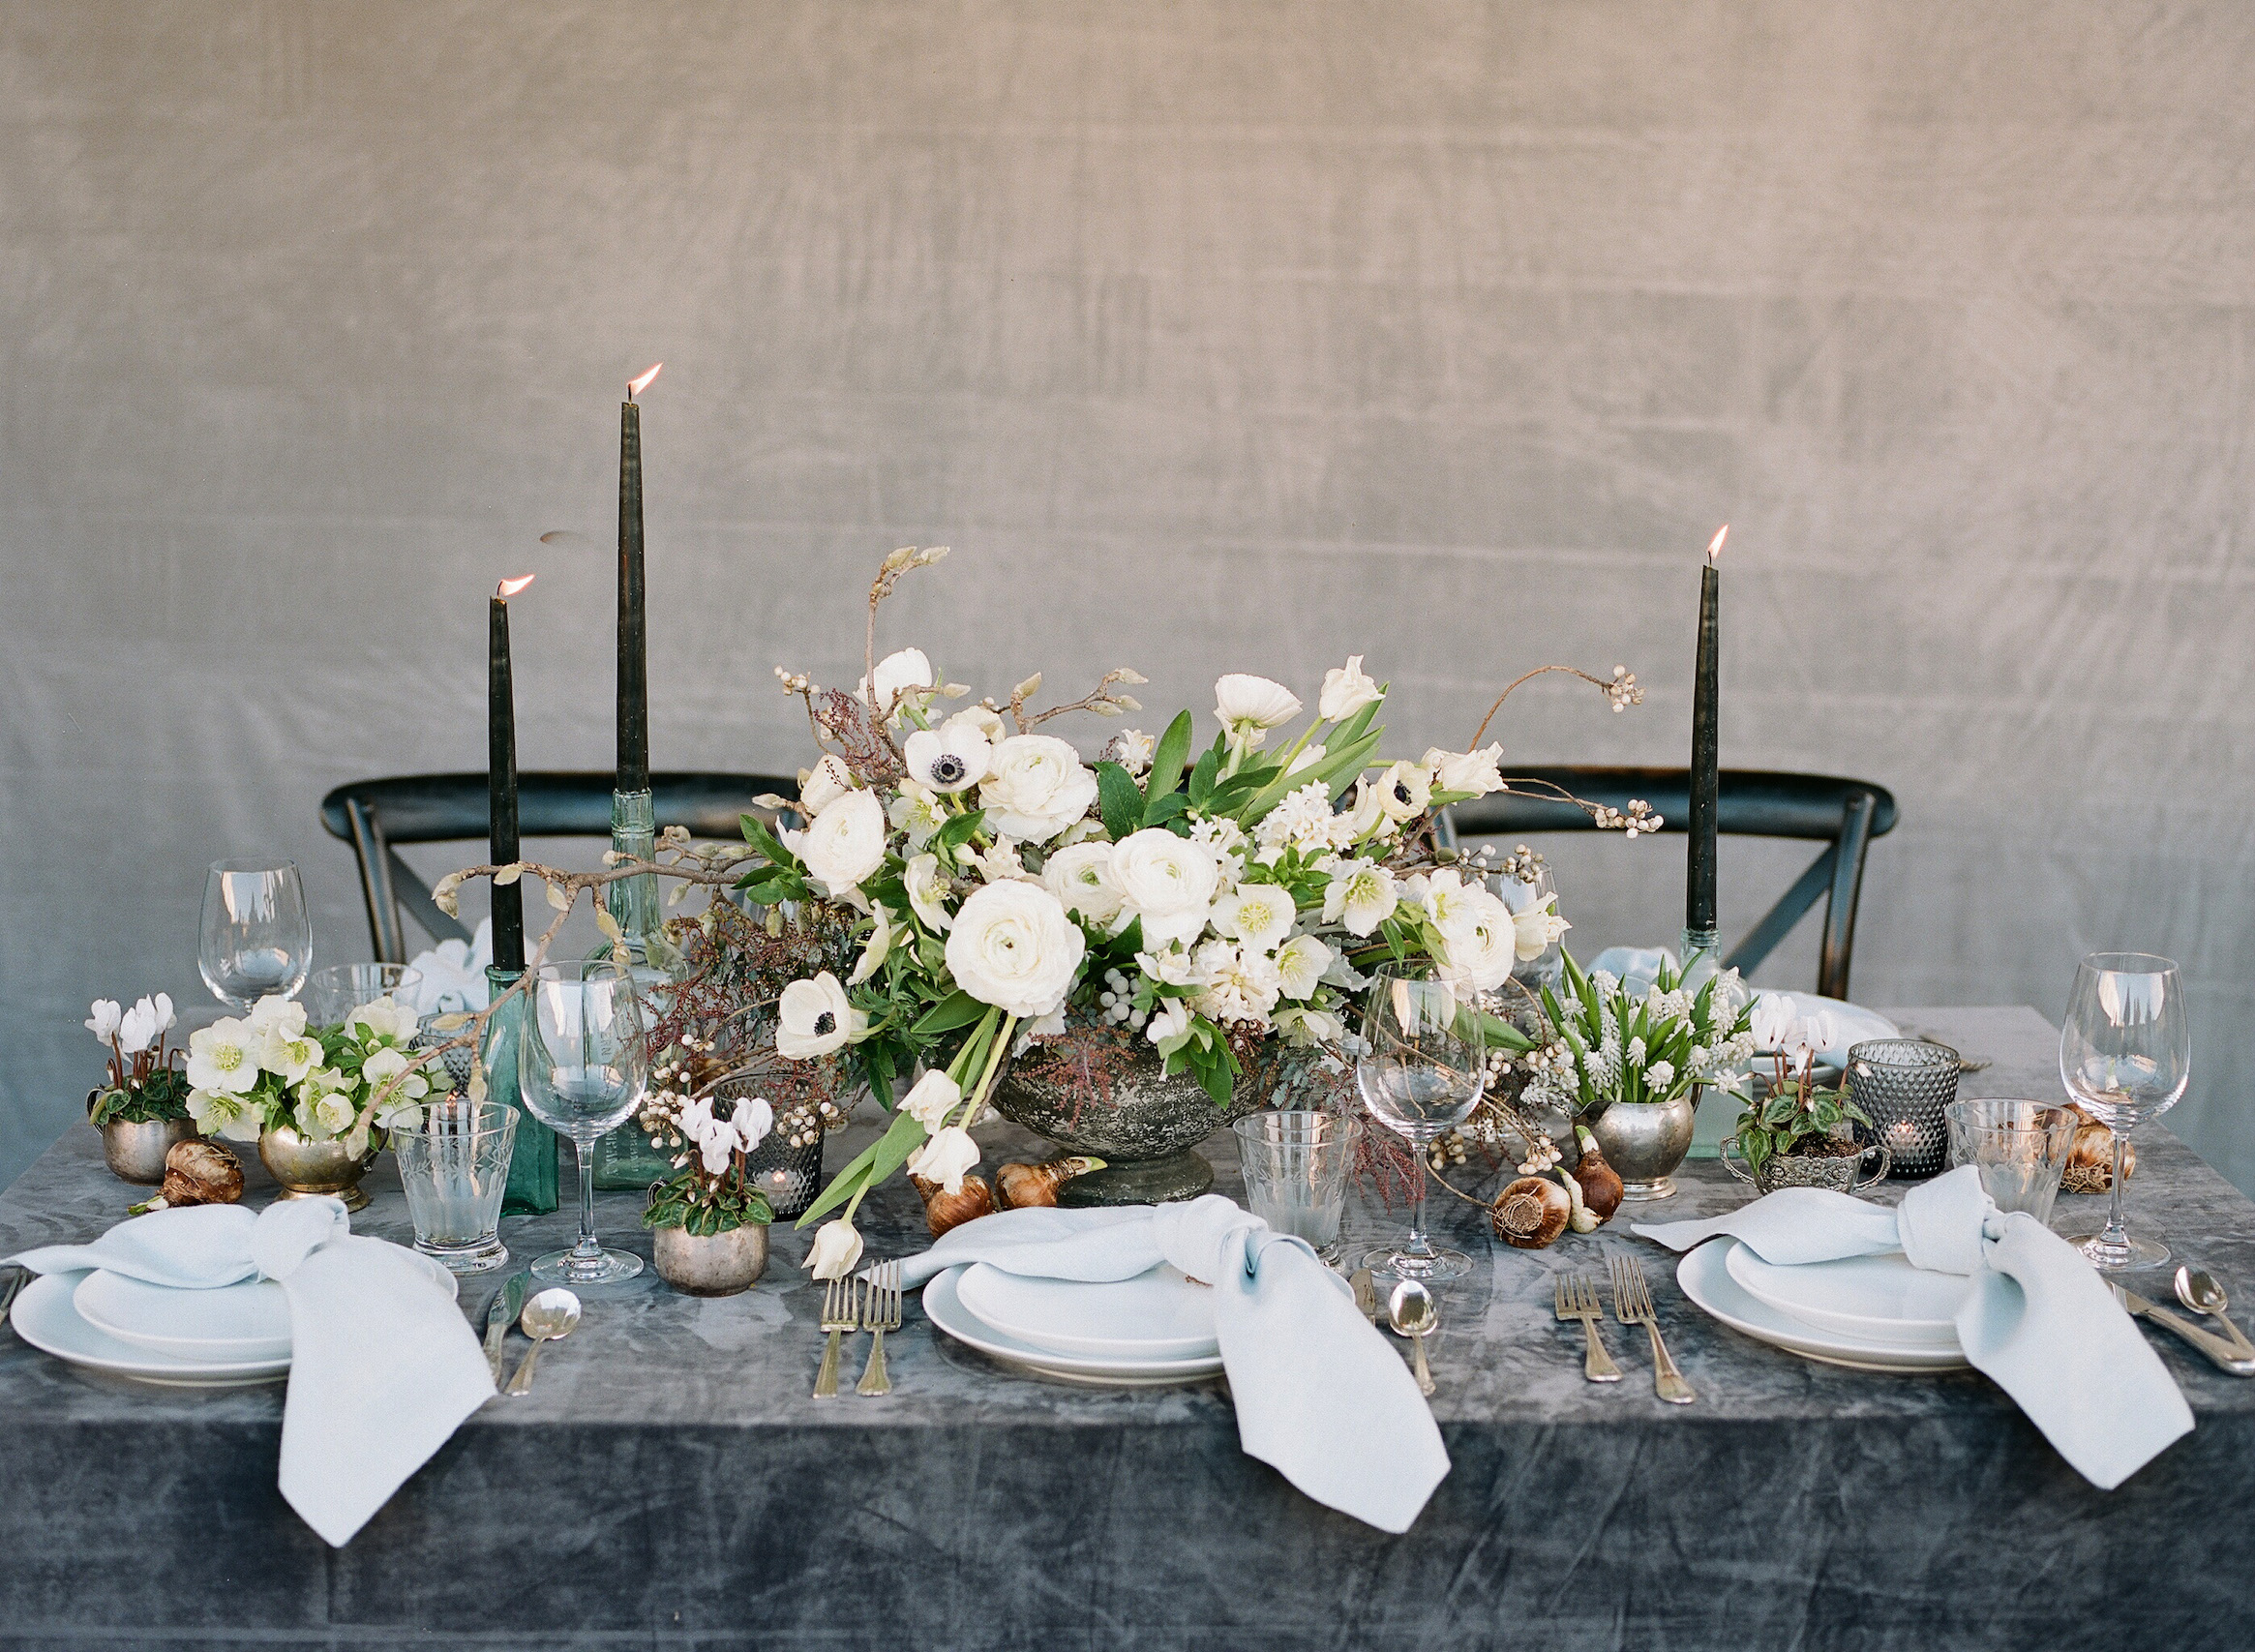 dress your table style tavola fine linen velvet charcoal anna potted planet christina mcneill graphy copy accent focus runner pattern with from hampton bay furniture white patio